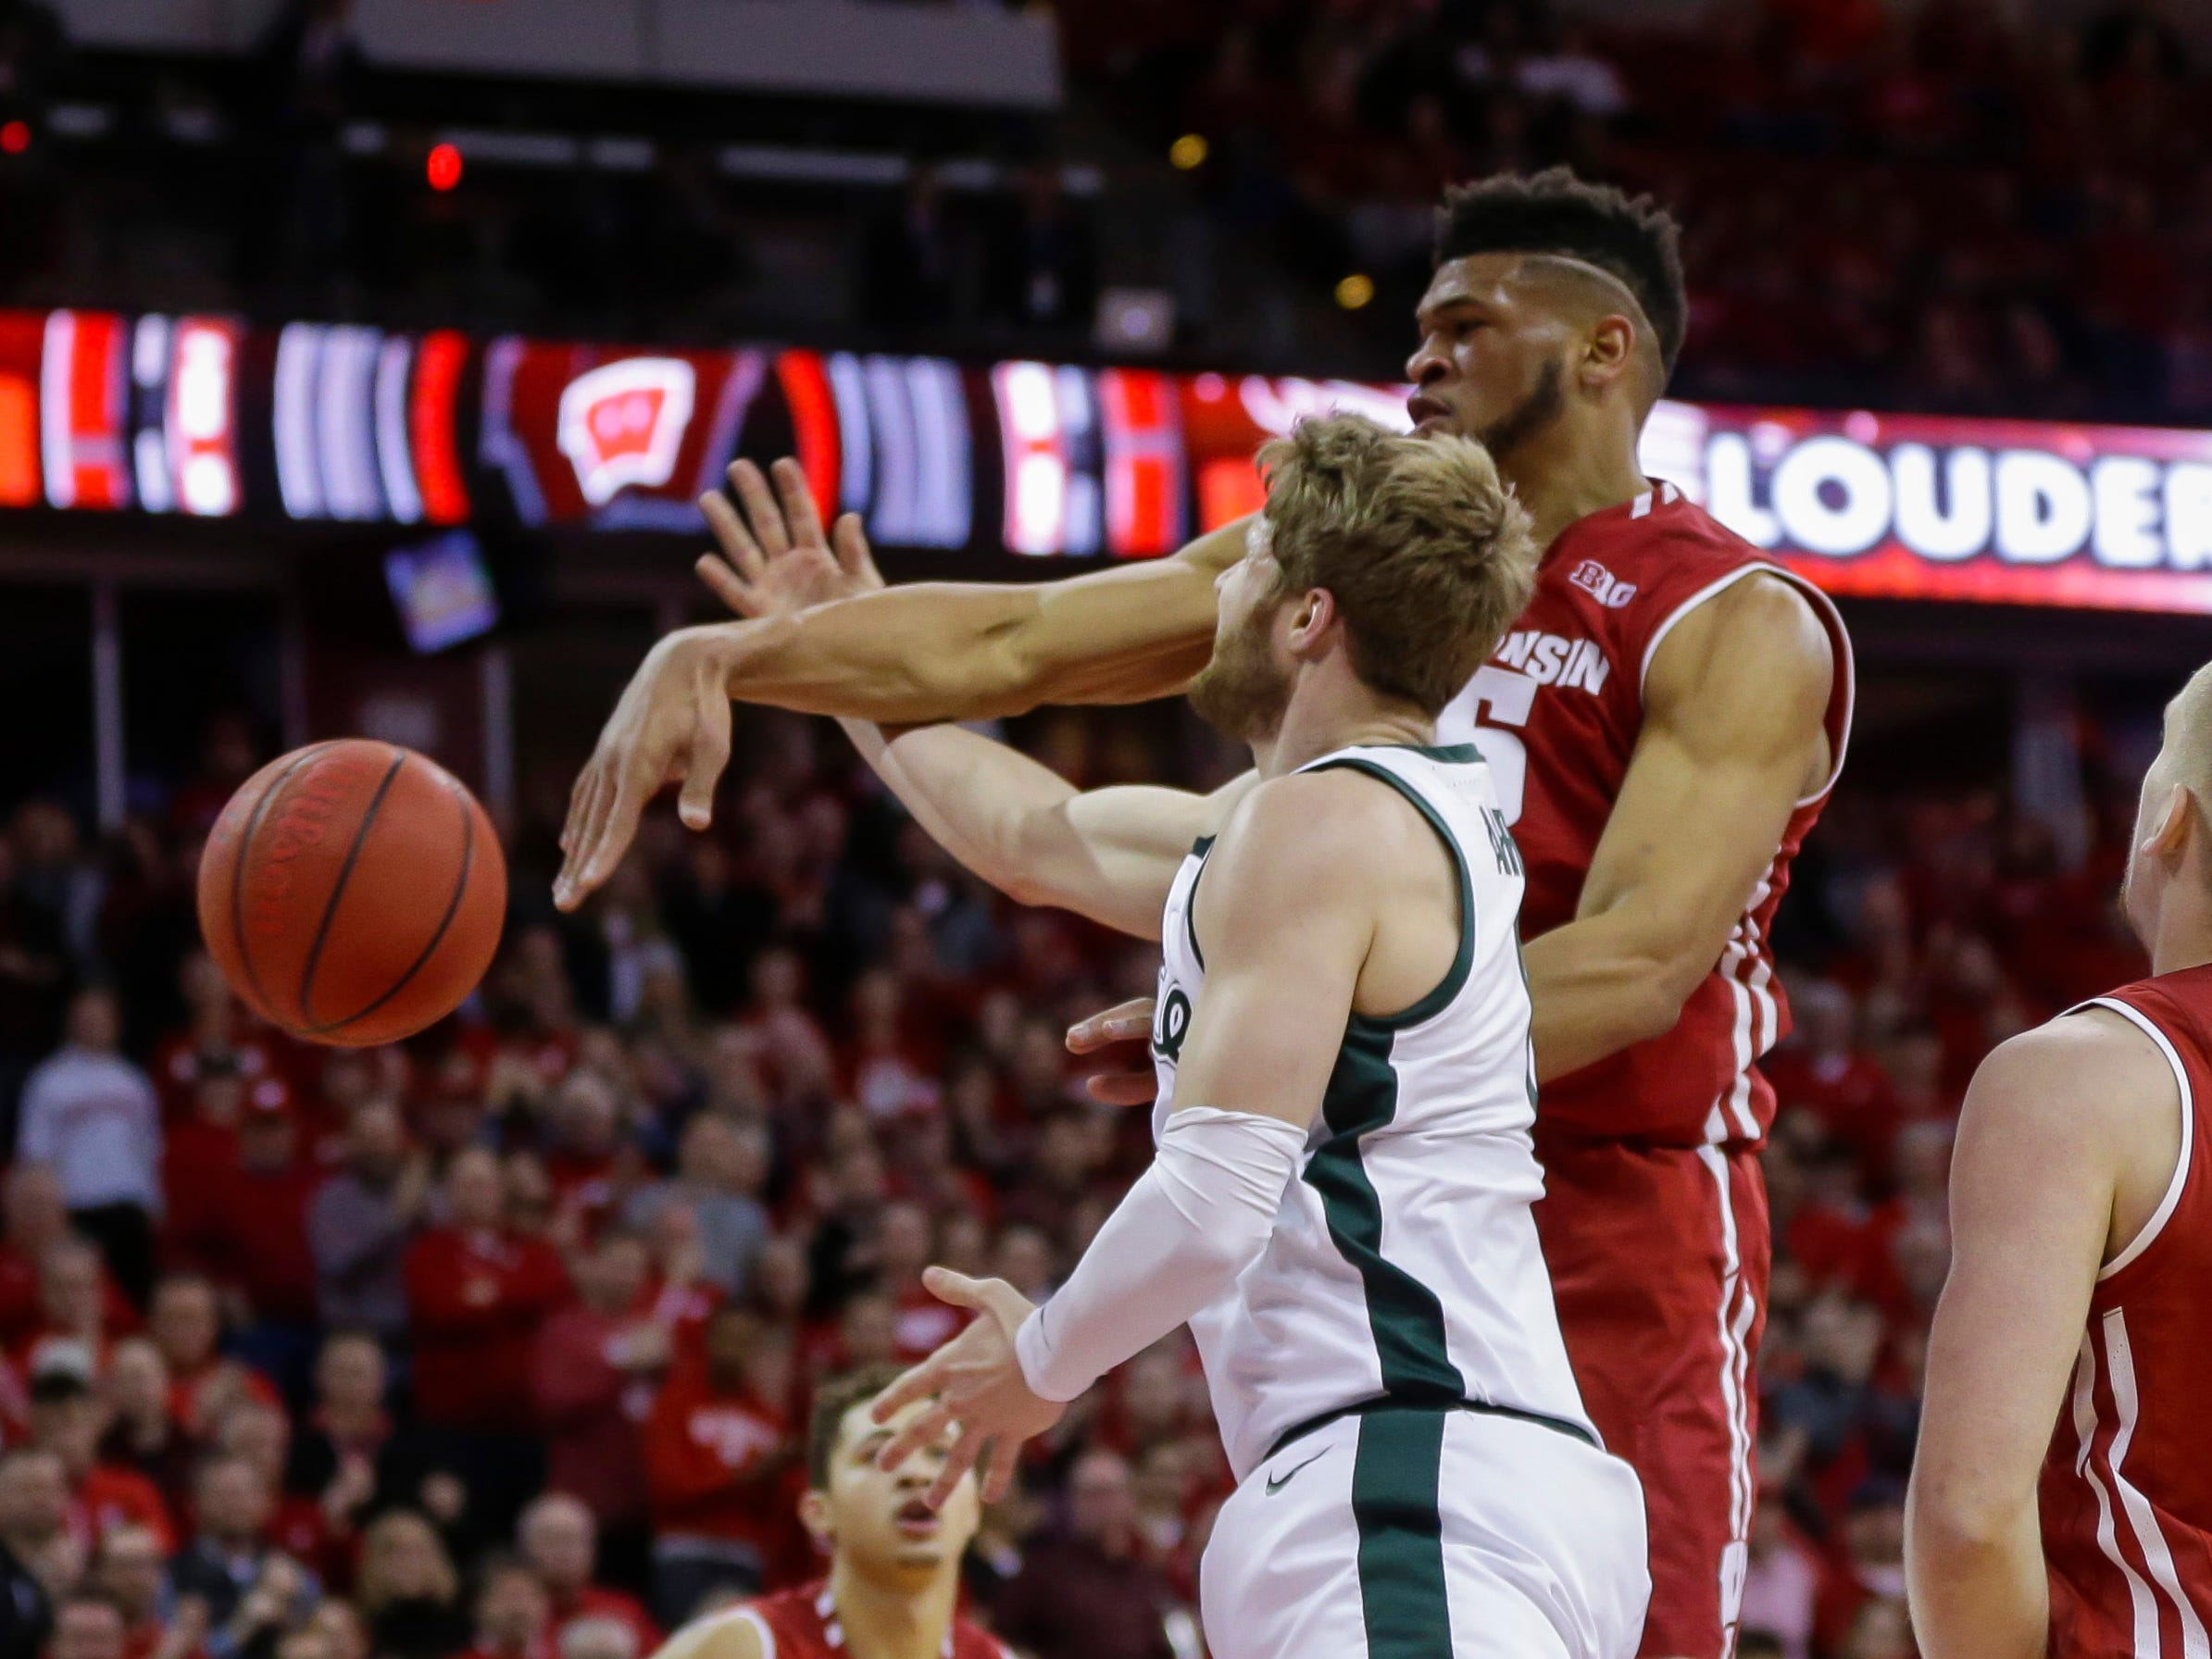 Wisconsin's Charles Thomas (15) blocks a a shot by Michigan States's Kyle Ahrens (0) during the first half.